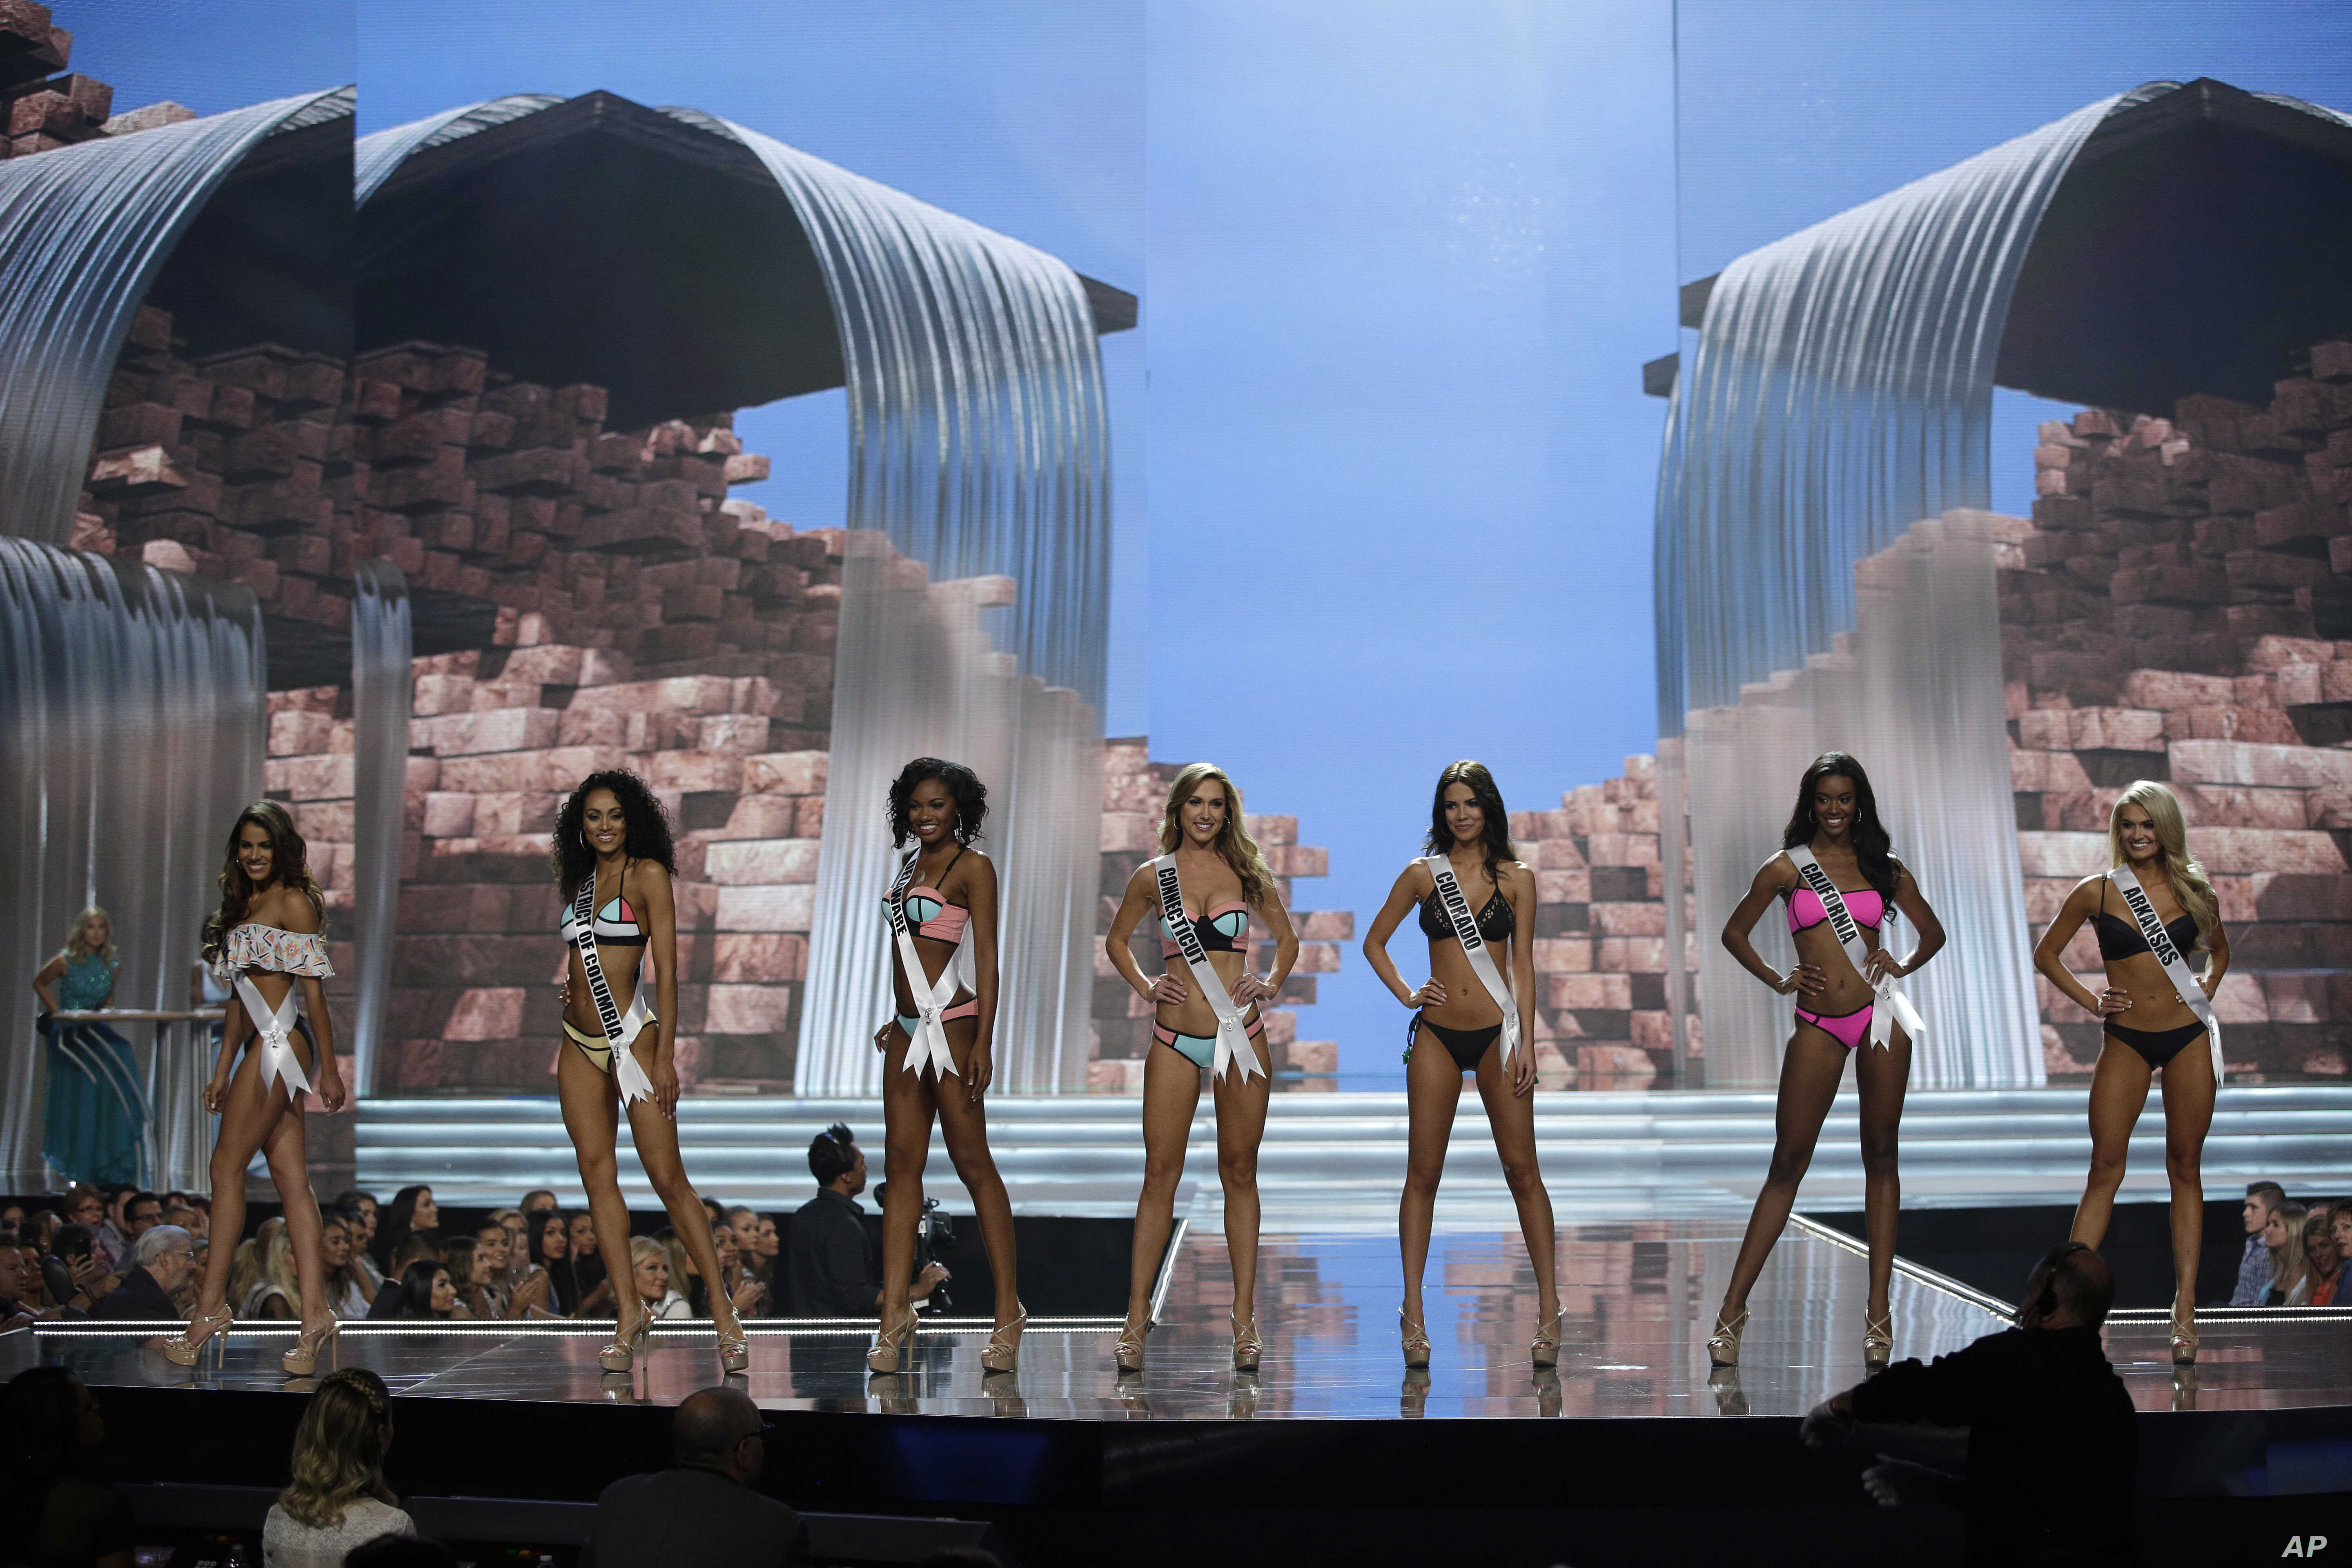 Miss Connecticut USA Olga Litvinenko, center, competes with others during a preliminary competition for Miss USA in Las Vegas, May 11, 2017.